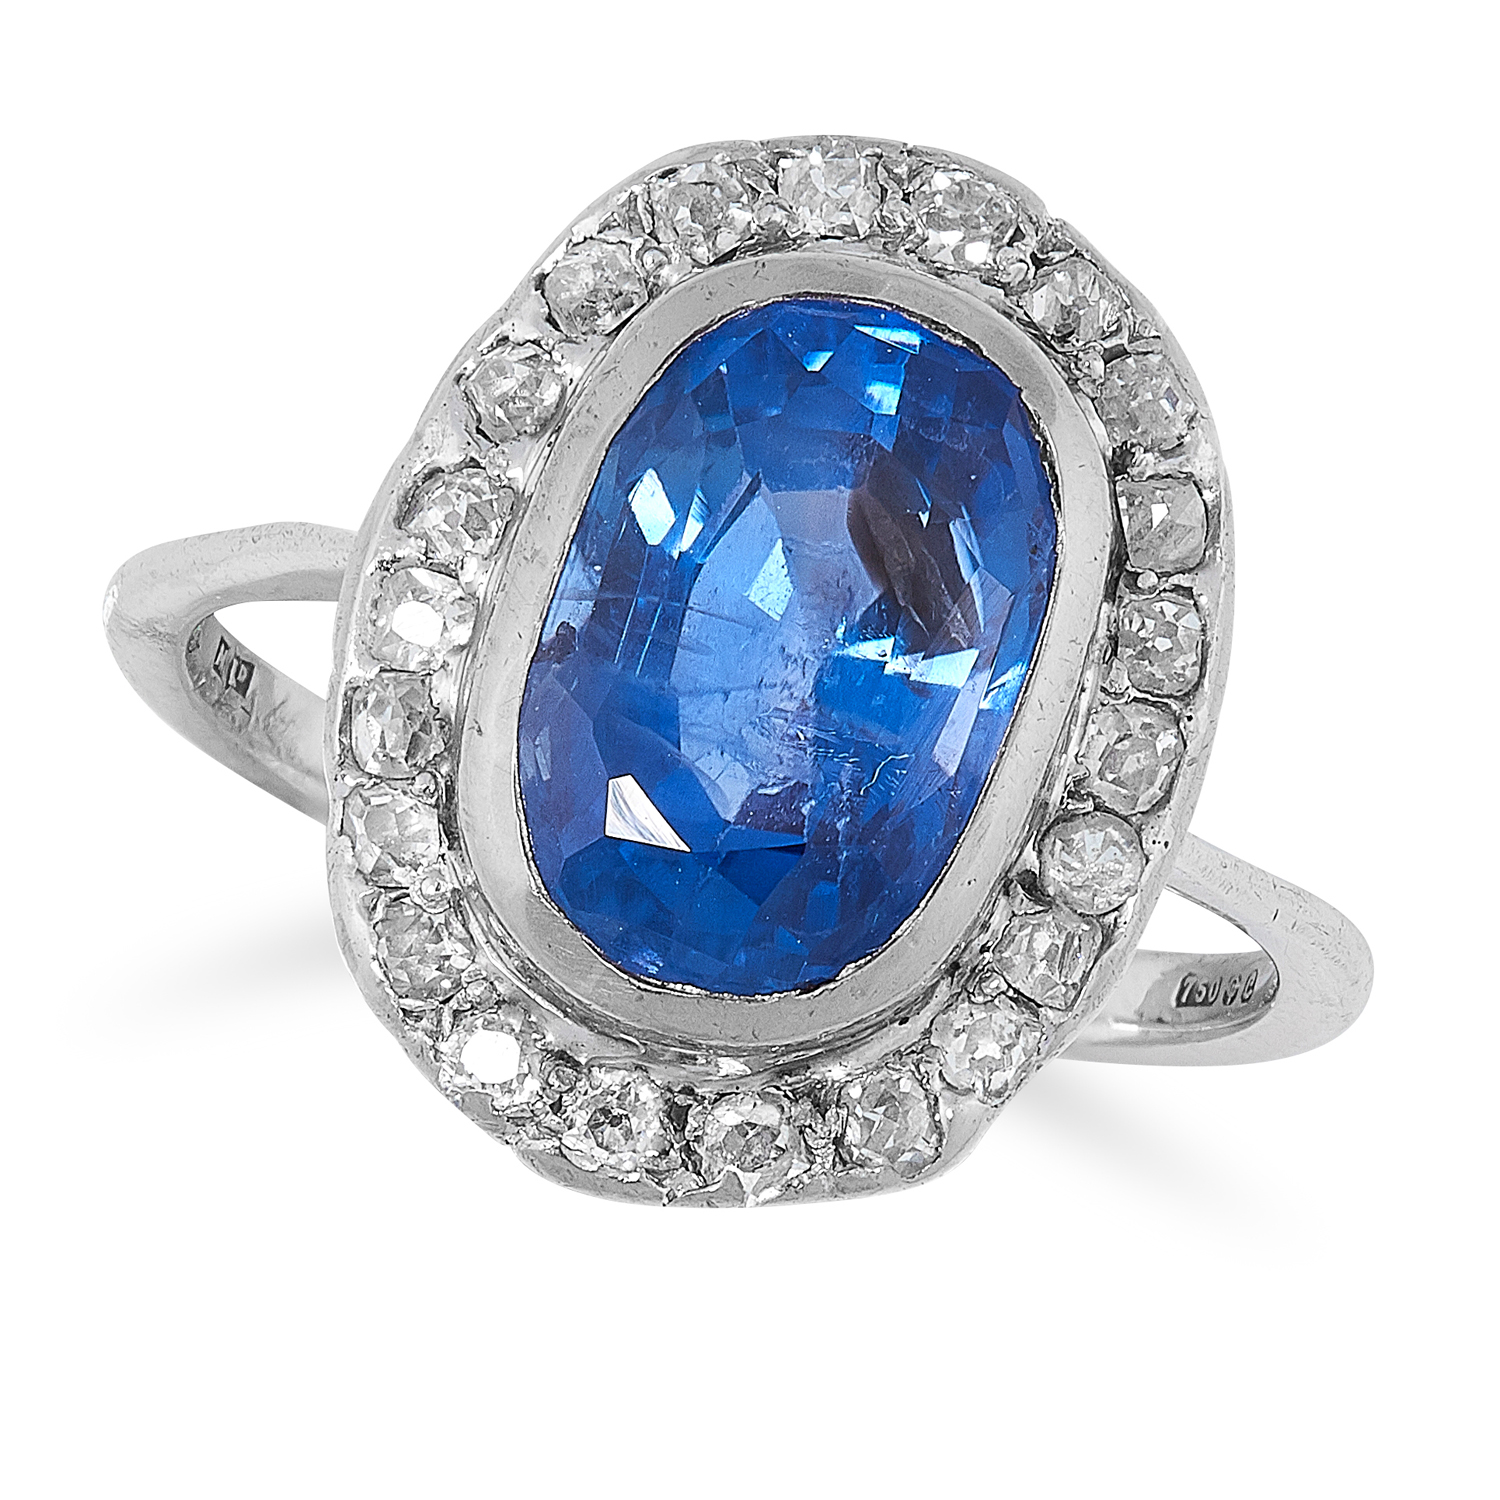 A COLOUR CHANGE SAPPHIRE AND DIAMOND CLUSTER RING in 18ct white gold, set with a central cushion cut